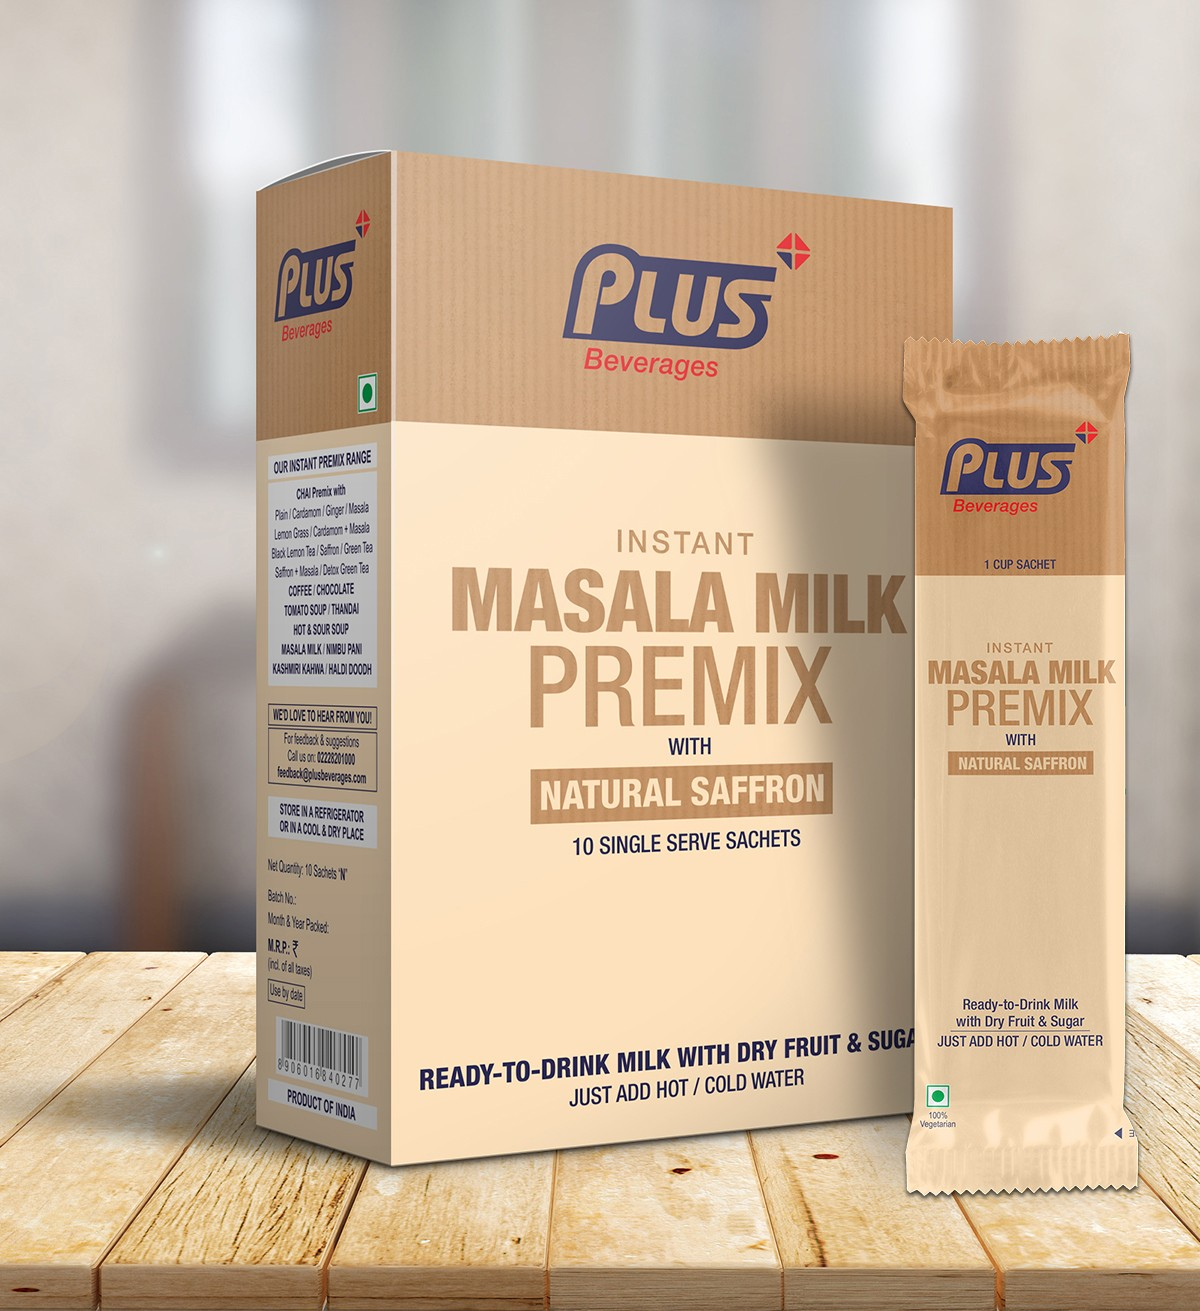 Get Instant Masala Milk Premix at best price - Free Shipping | Plus Beverages